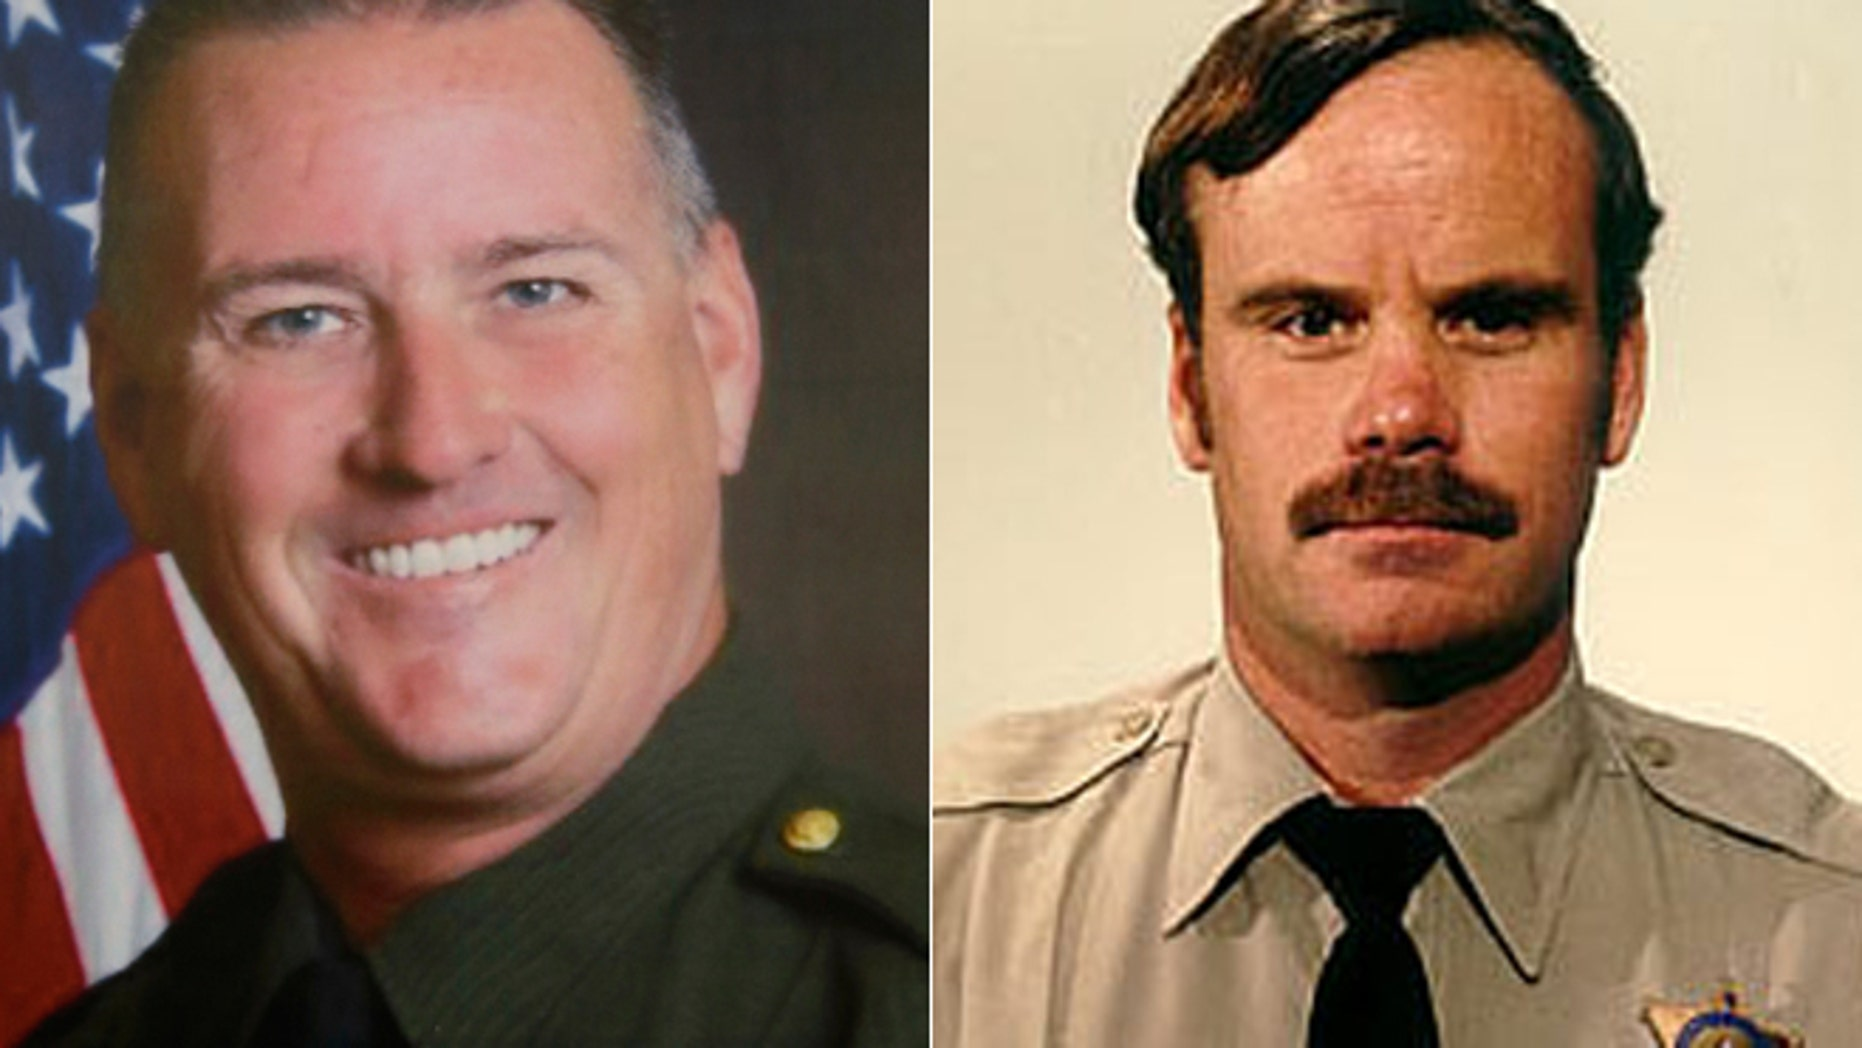 From the left, Placer County Sheriff's Deputy Michael David Davis Jr. was killed in the line of duty exactly 26 years after his father, Riverside County Sheriff's Deputy Michael David Davis, died in a helicopter crash.